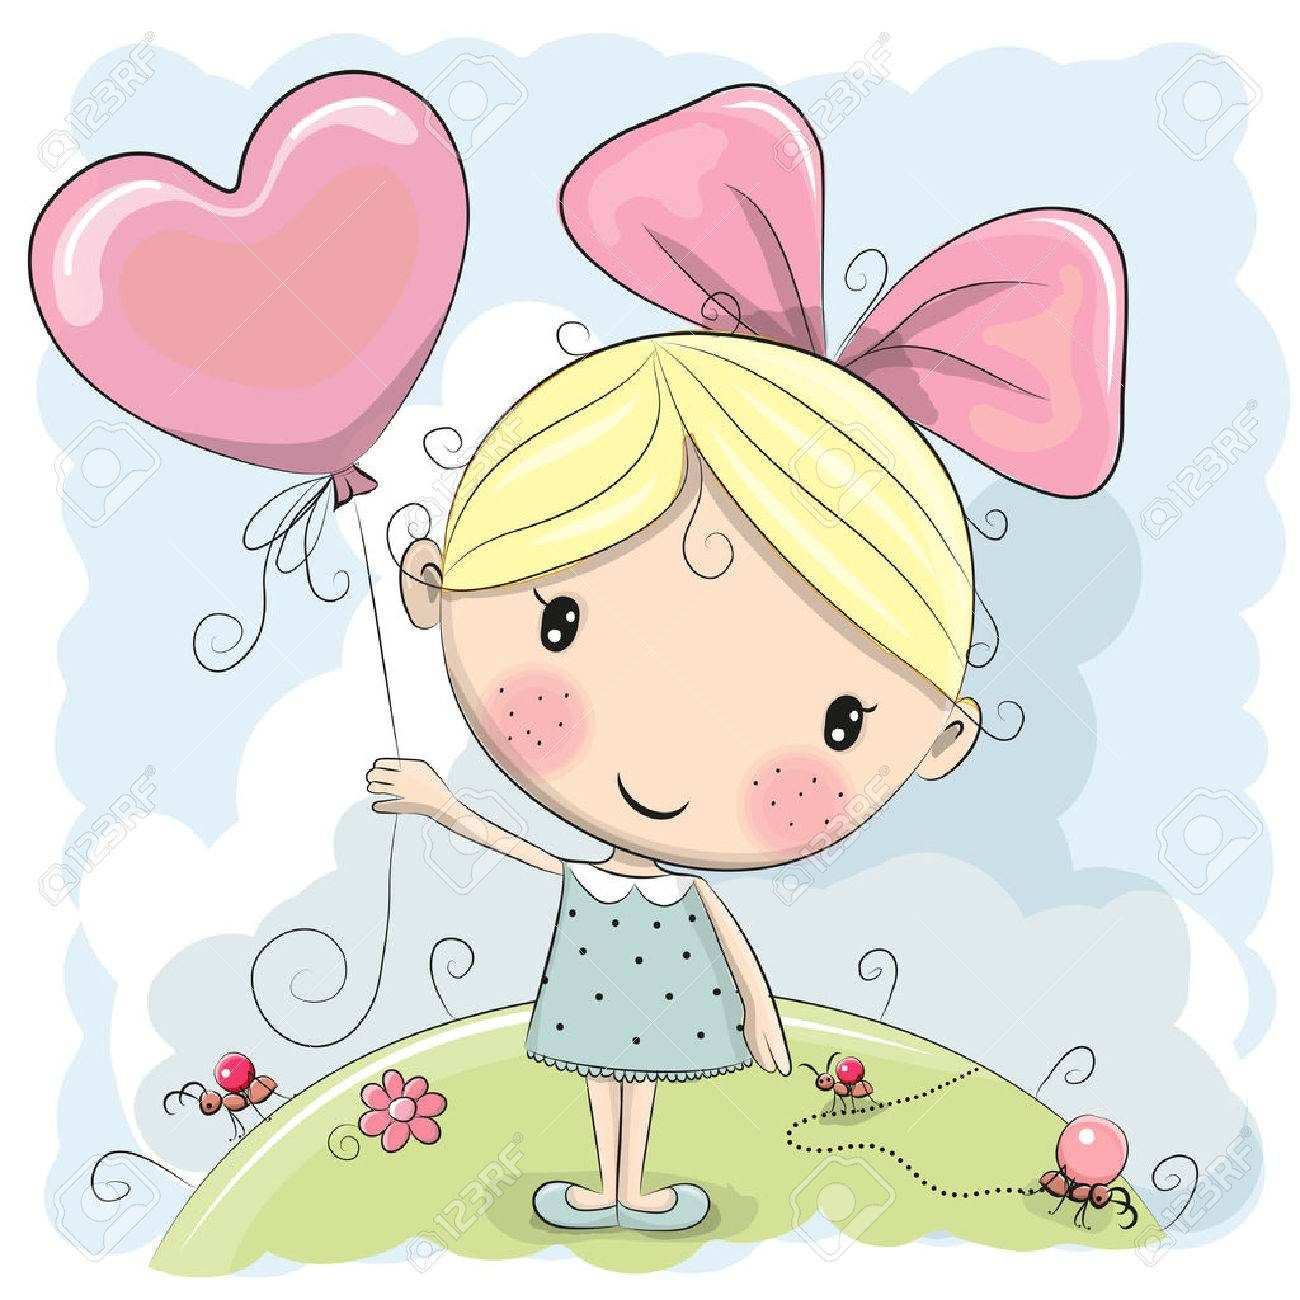 cute cartoon girl with a balloon on the meadow royalty free cliparts